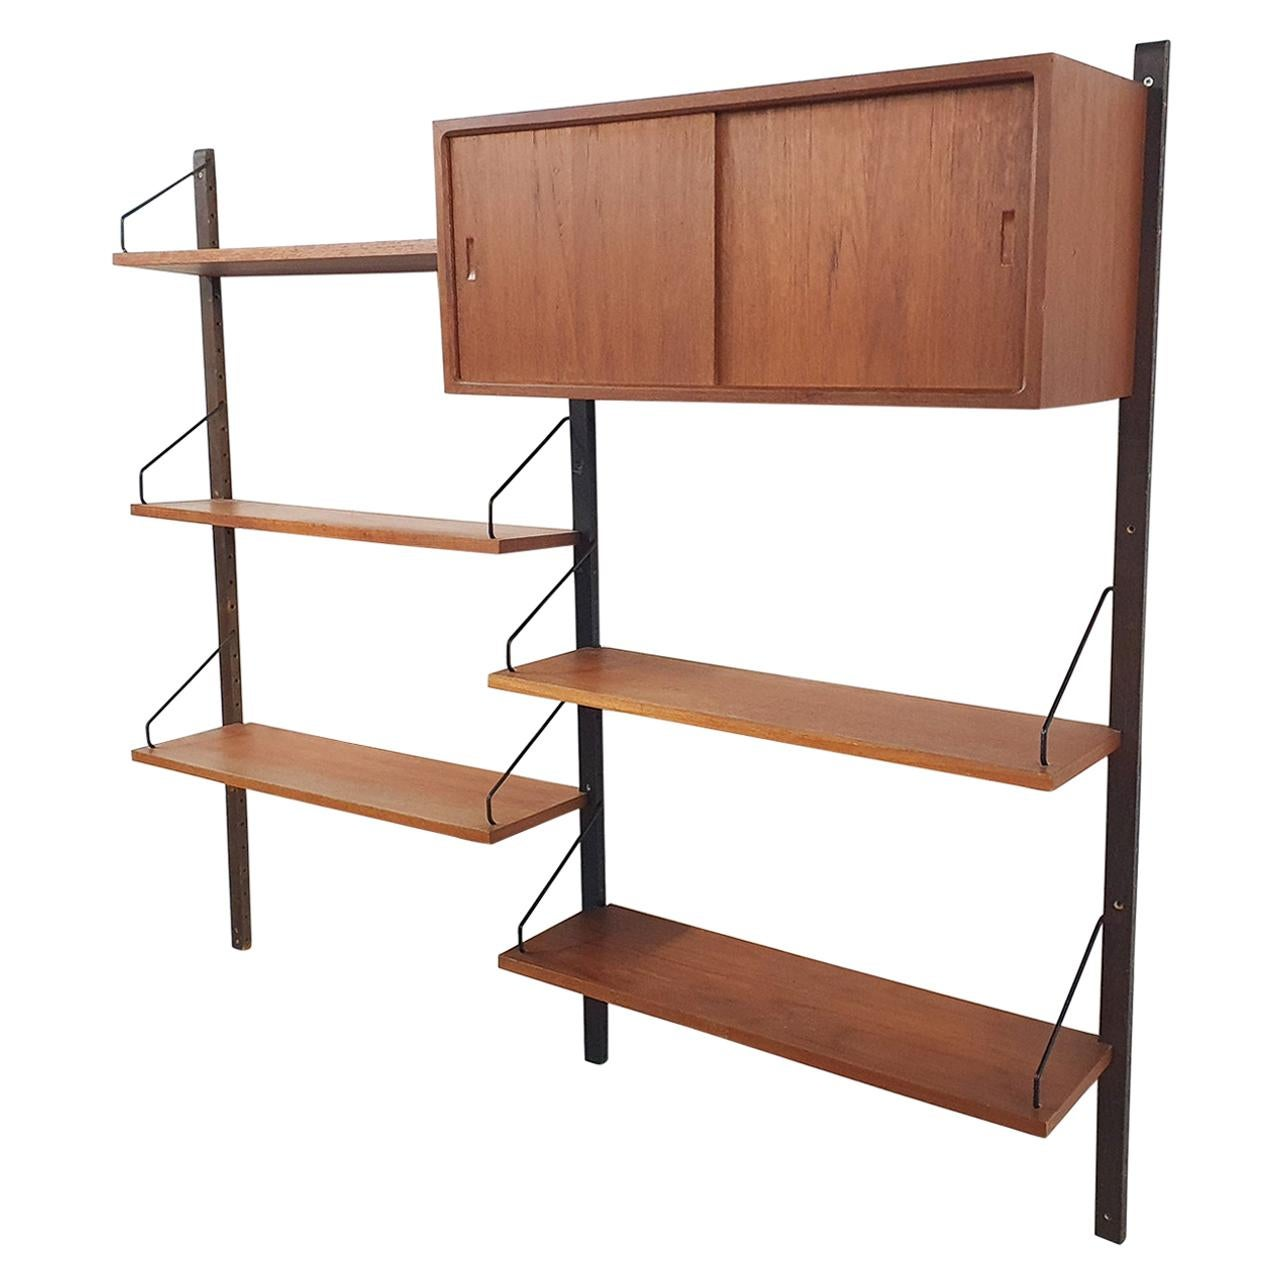 Book Shelves by Poul Cadovius for Royal System, Teak Wall Unit, Denmark, 1950s